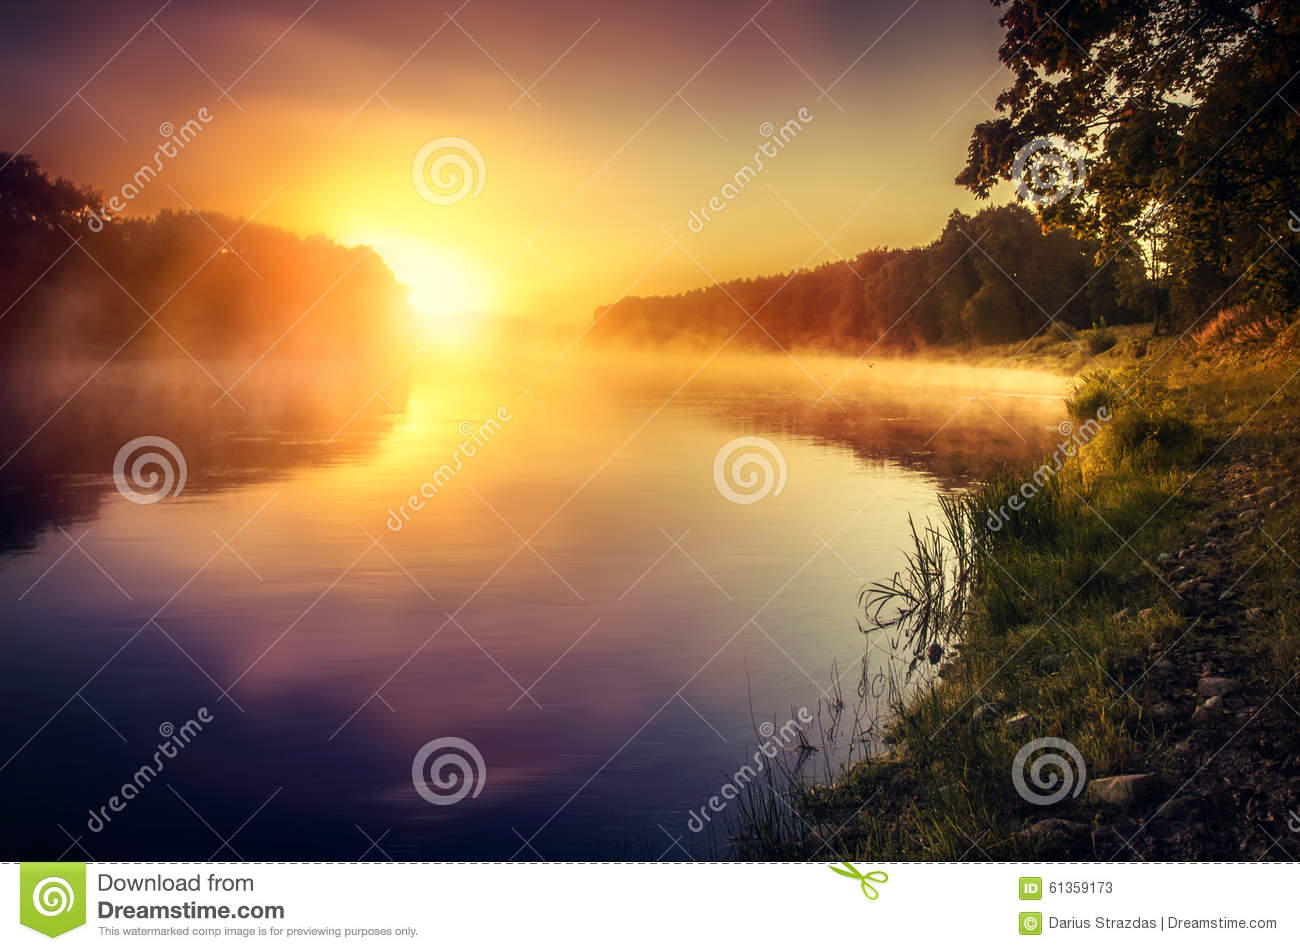 Misty sunrise over the river